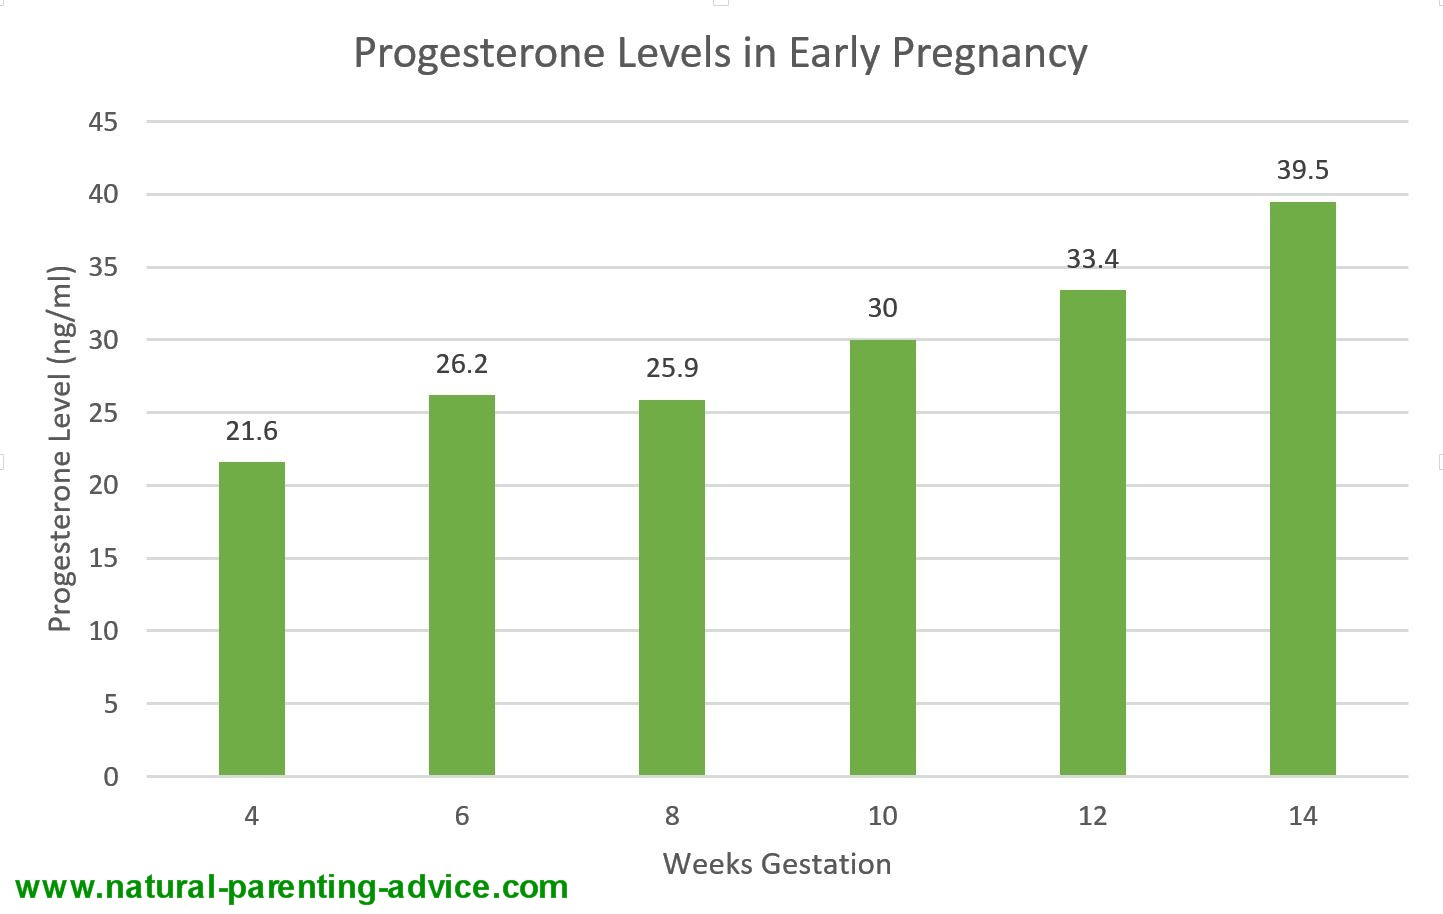 Progesterone Levels in Early Pregnancy